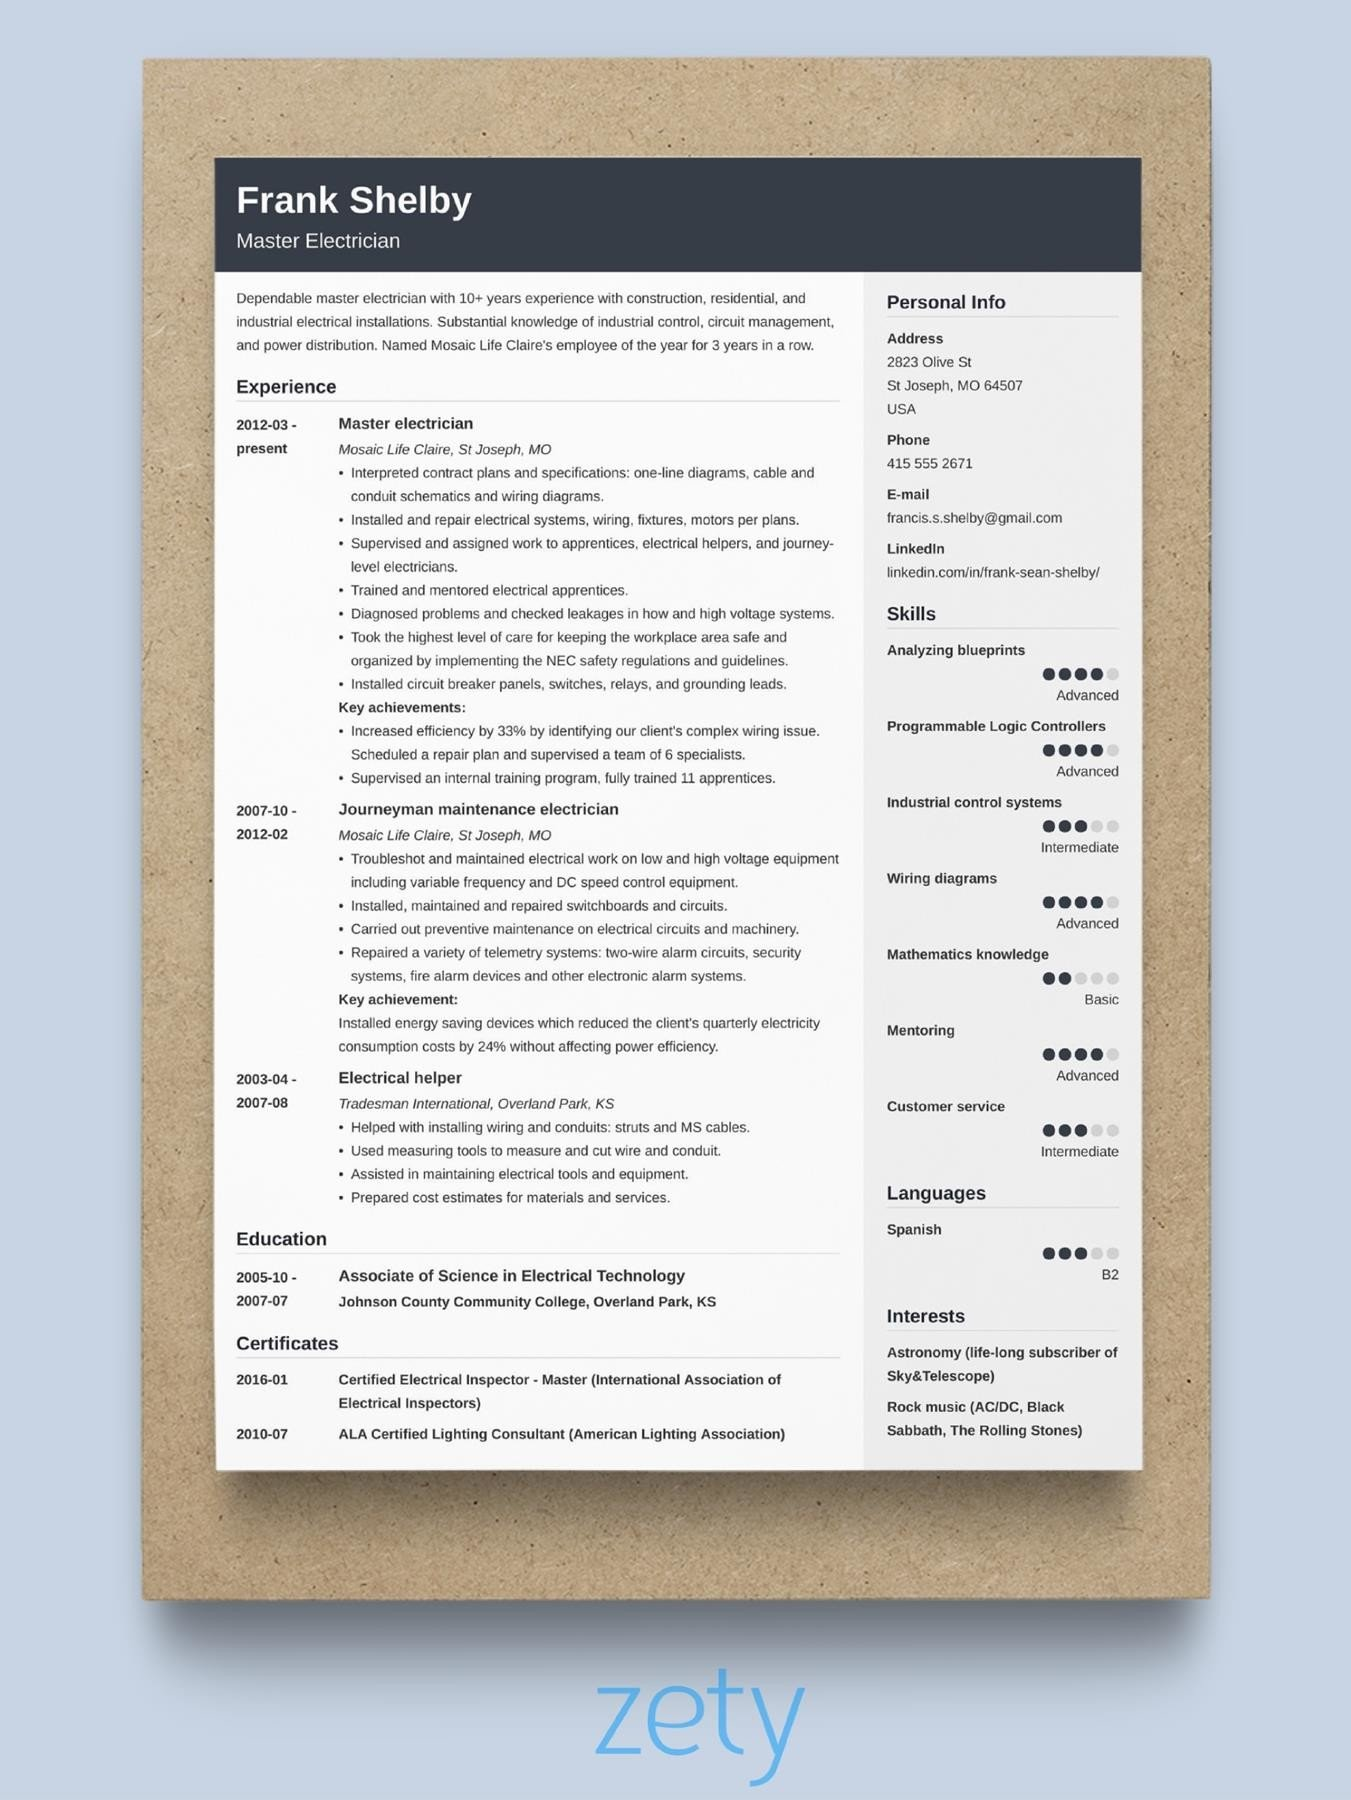 best resume format professional samples most used job boards fire officer examples social Resume Most Used Resume Format